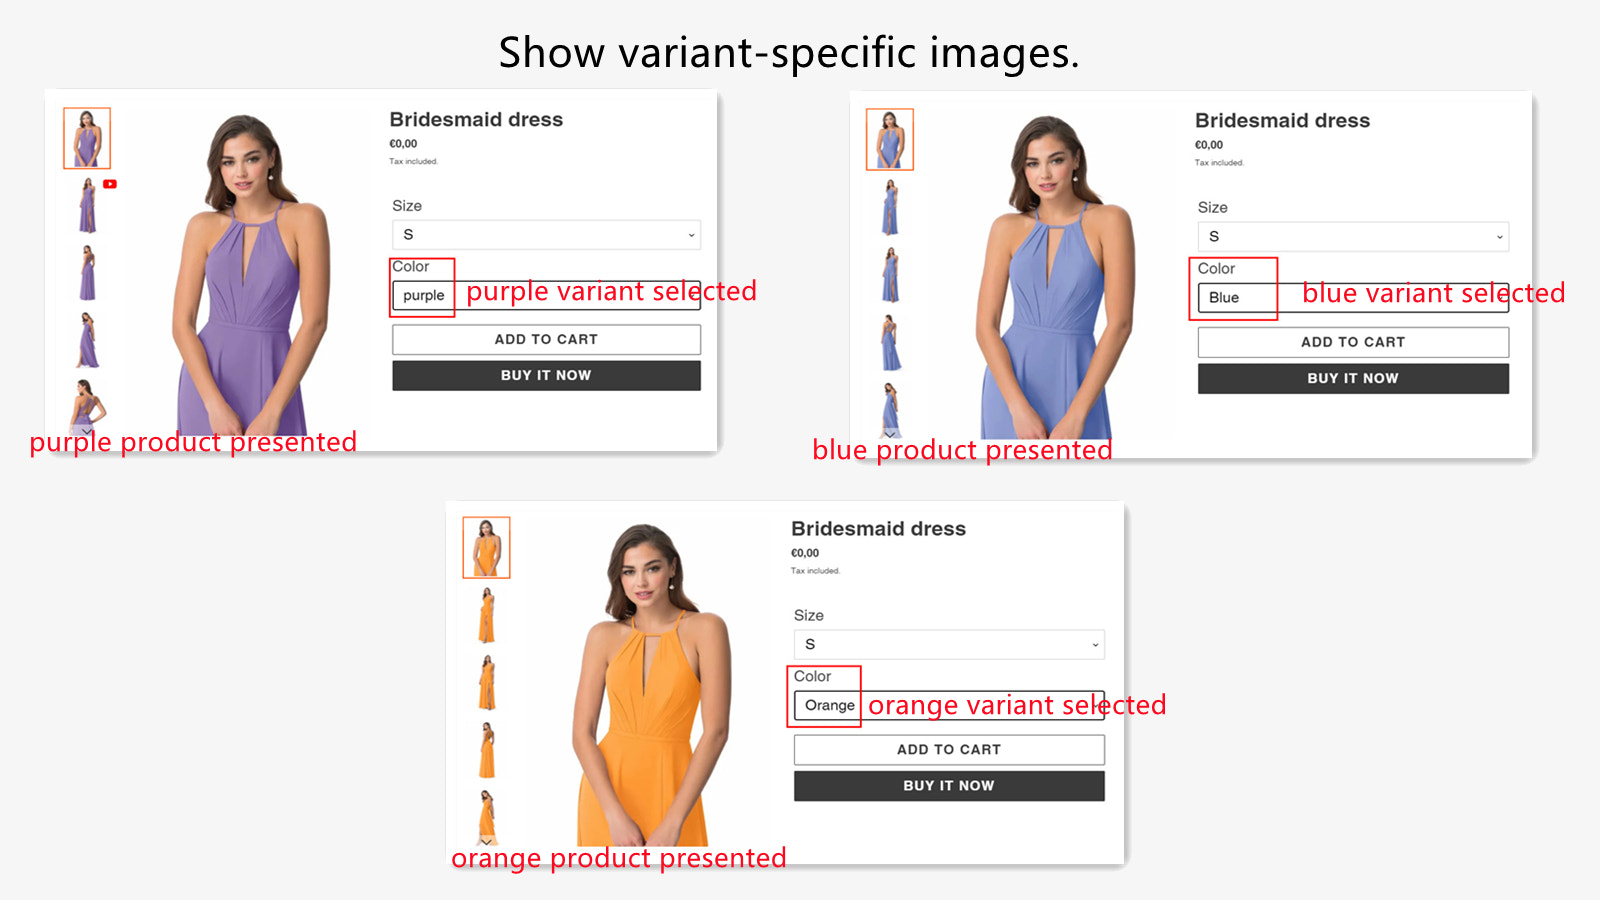 Variant images